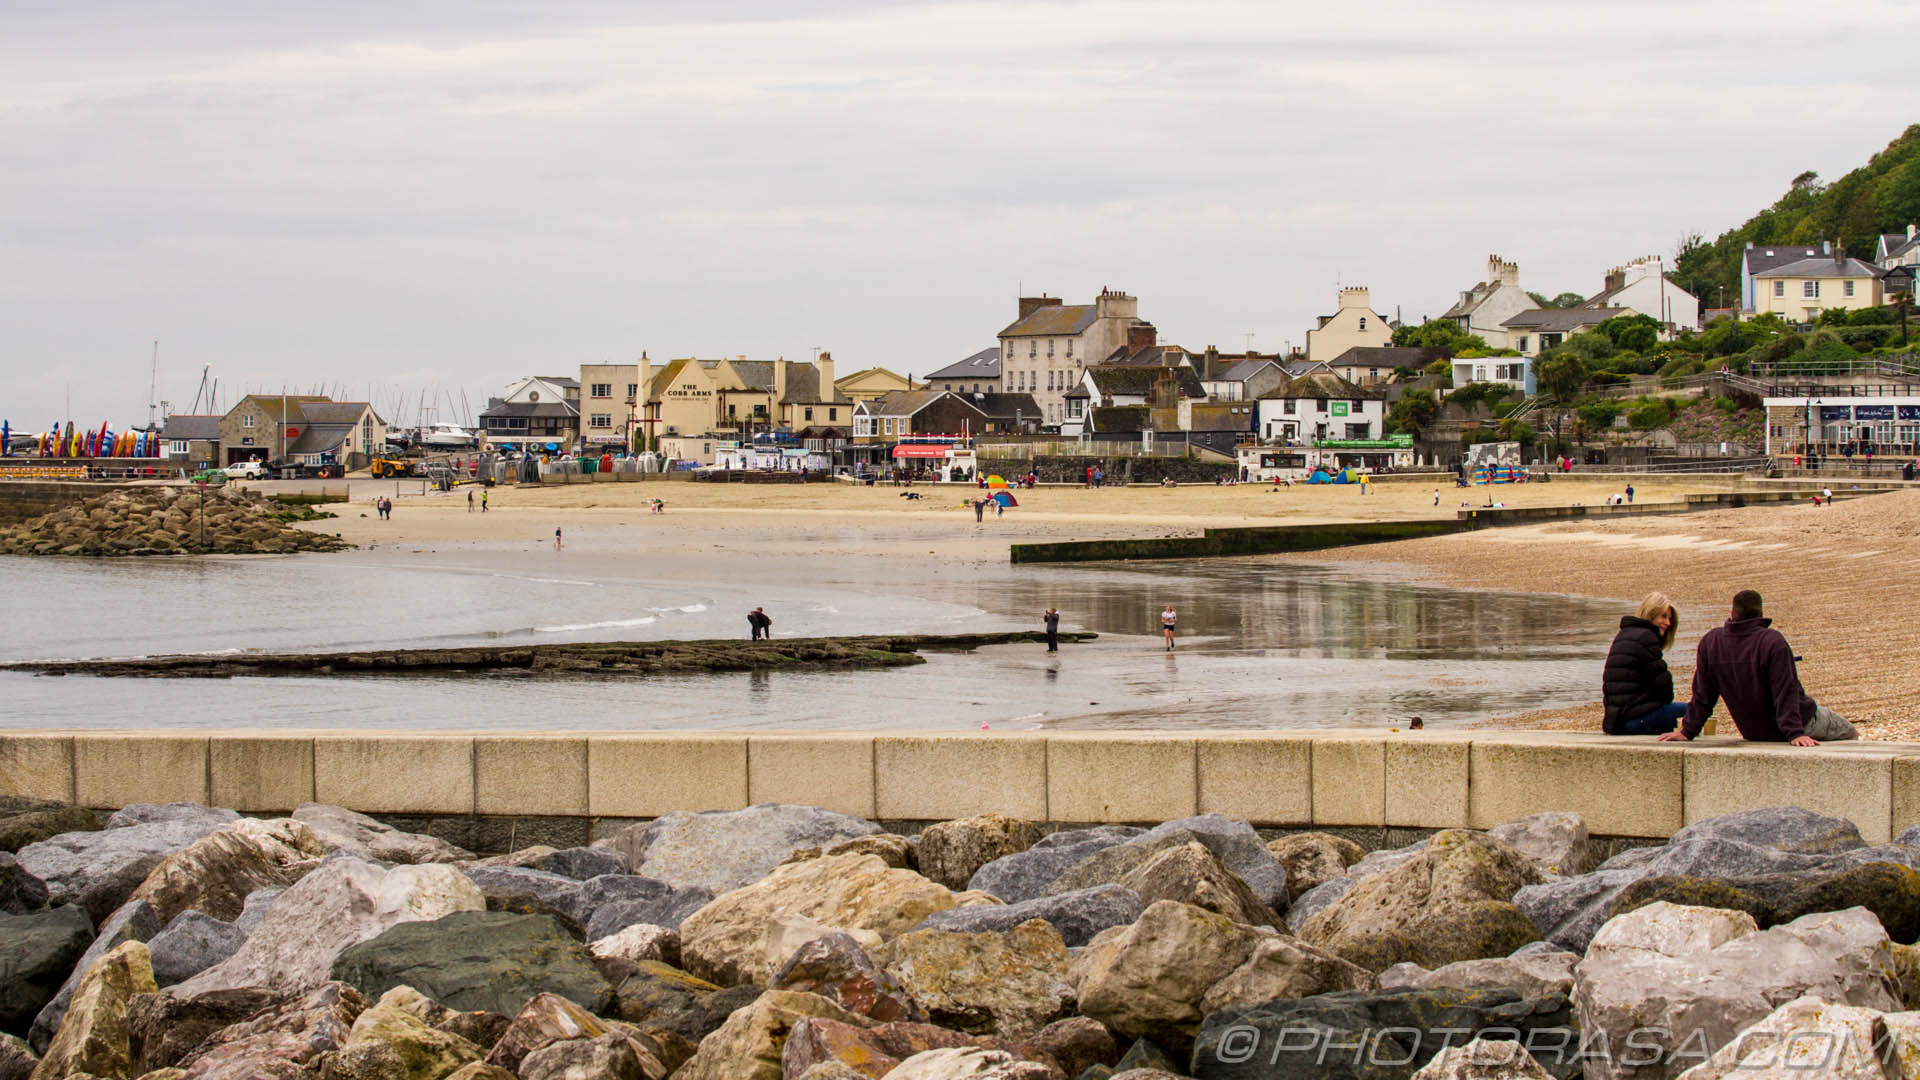 http://photorasa.com/lyme-regis/by-the-rocks/